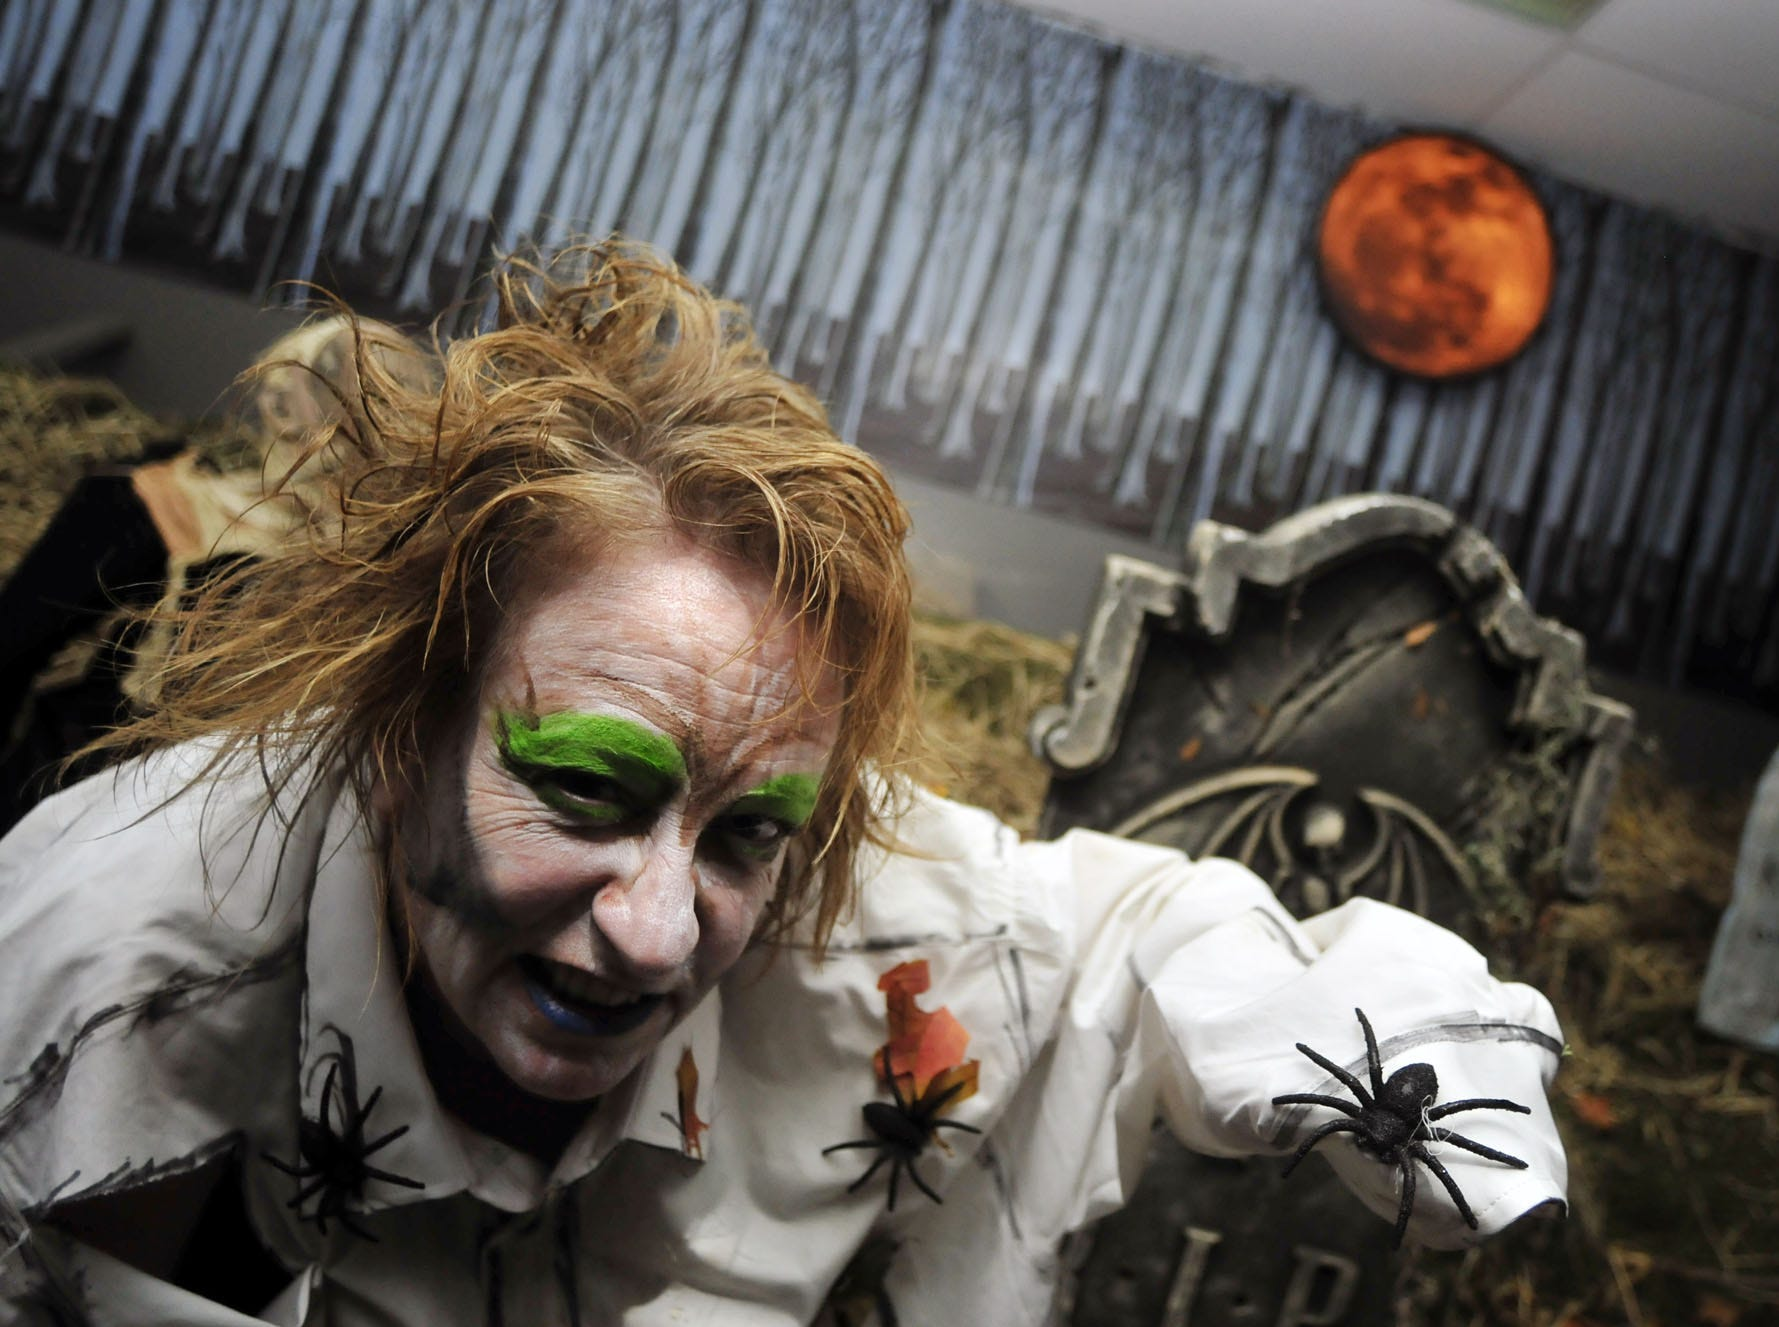 2012: Volunteers get into character during the run through of the Haunted Halls of Horror on Friday Oct. 12. Haunted Halls of Horror is on its third year at the Southern Tier Independence Center, and will operate every Friday and Saturday until the last weekend in October. In addition it will be open Halloween, and Sunday Oct. 28. All money will go to help people with disabilities in Broome County